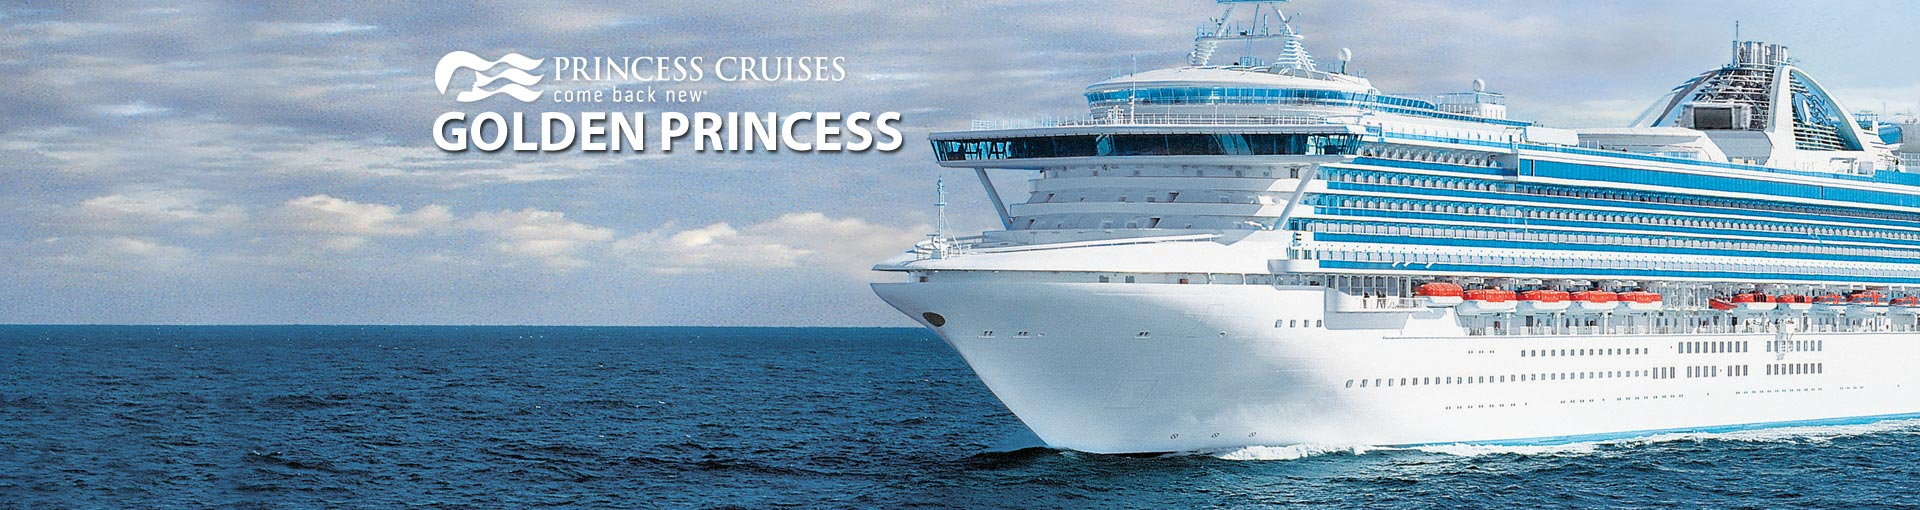 Princess Cruises Golden Princess cruise ship